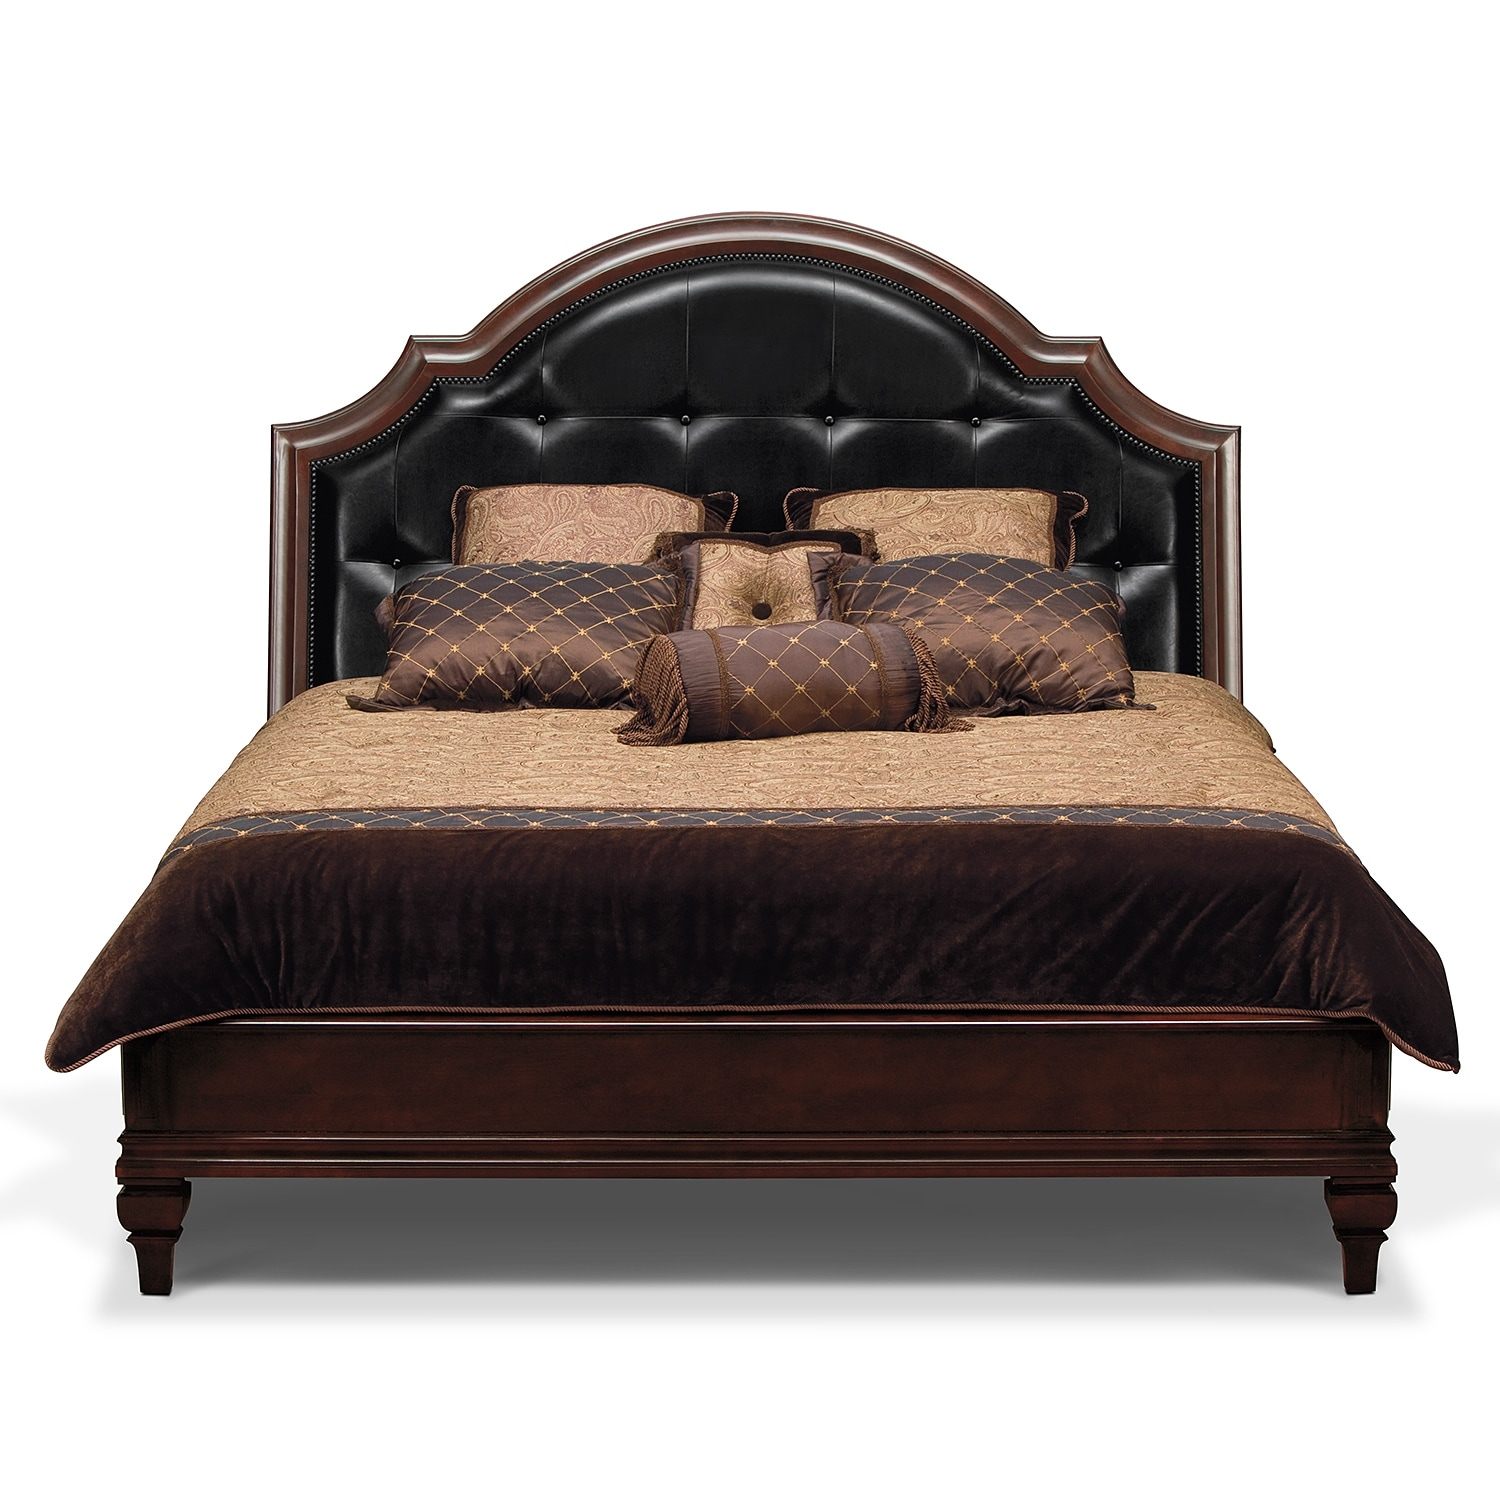 Discontinued Pulaski Bedroom Furniture Piazzesius - Manhattan bedroom furniture